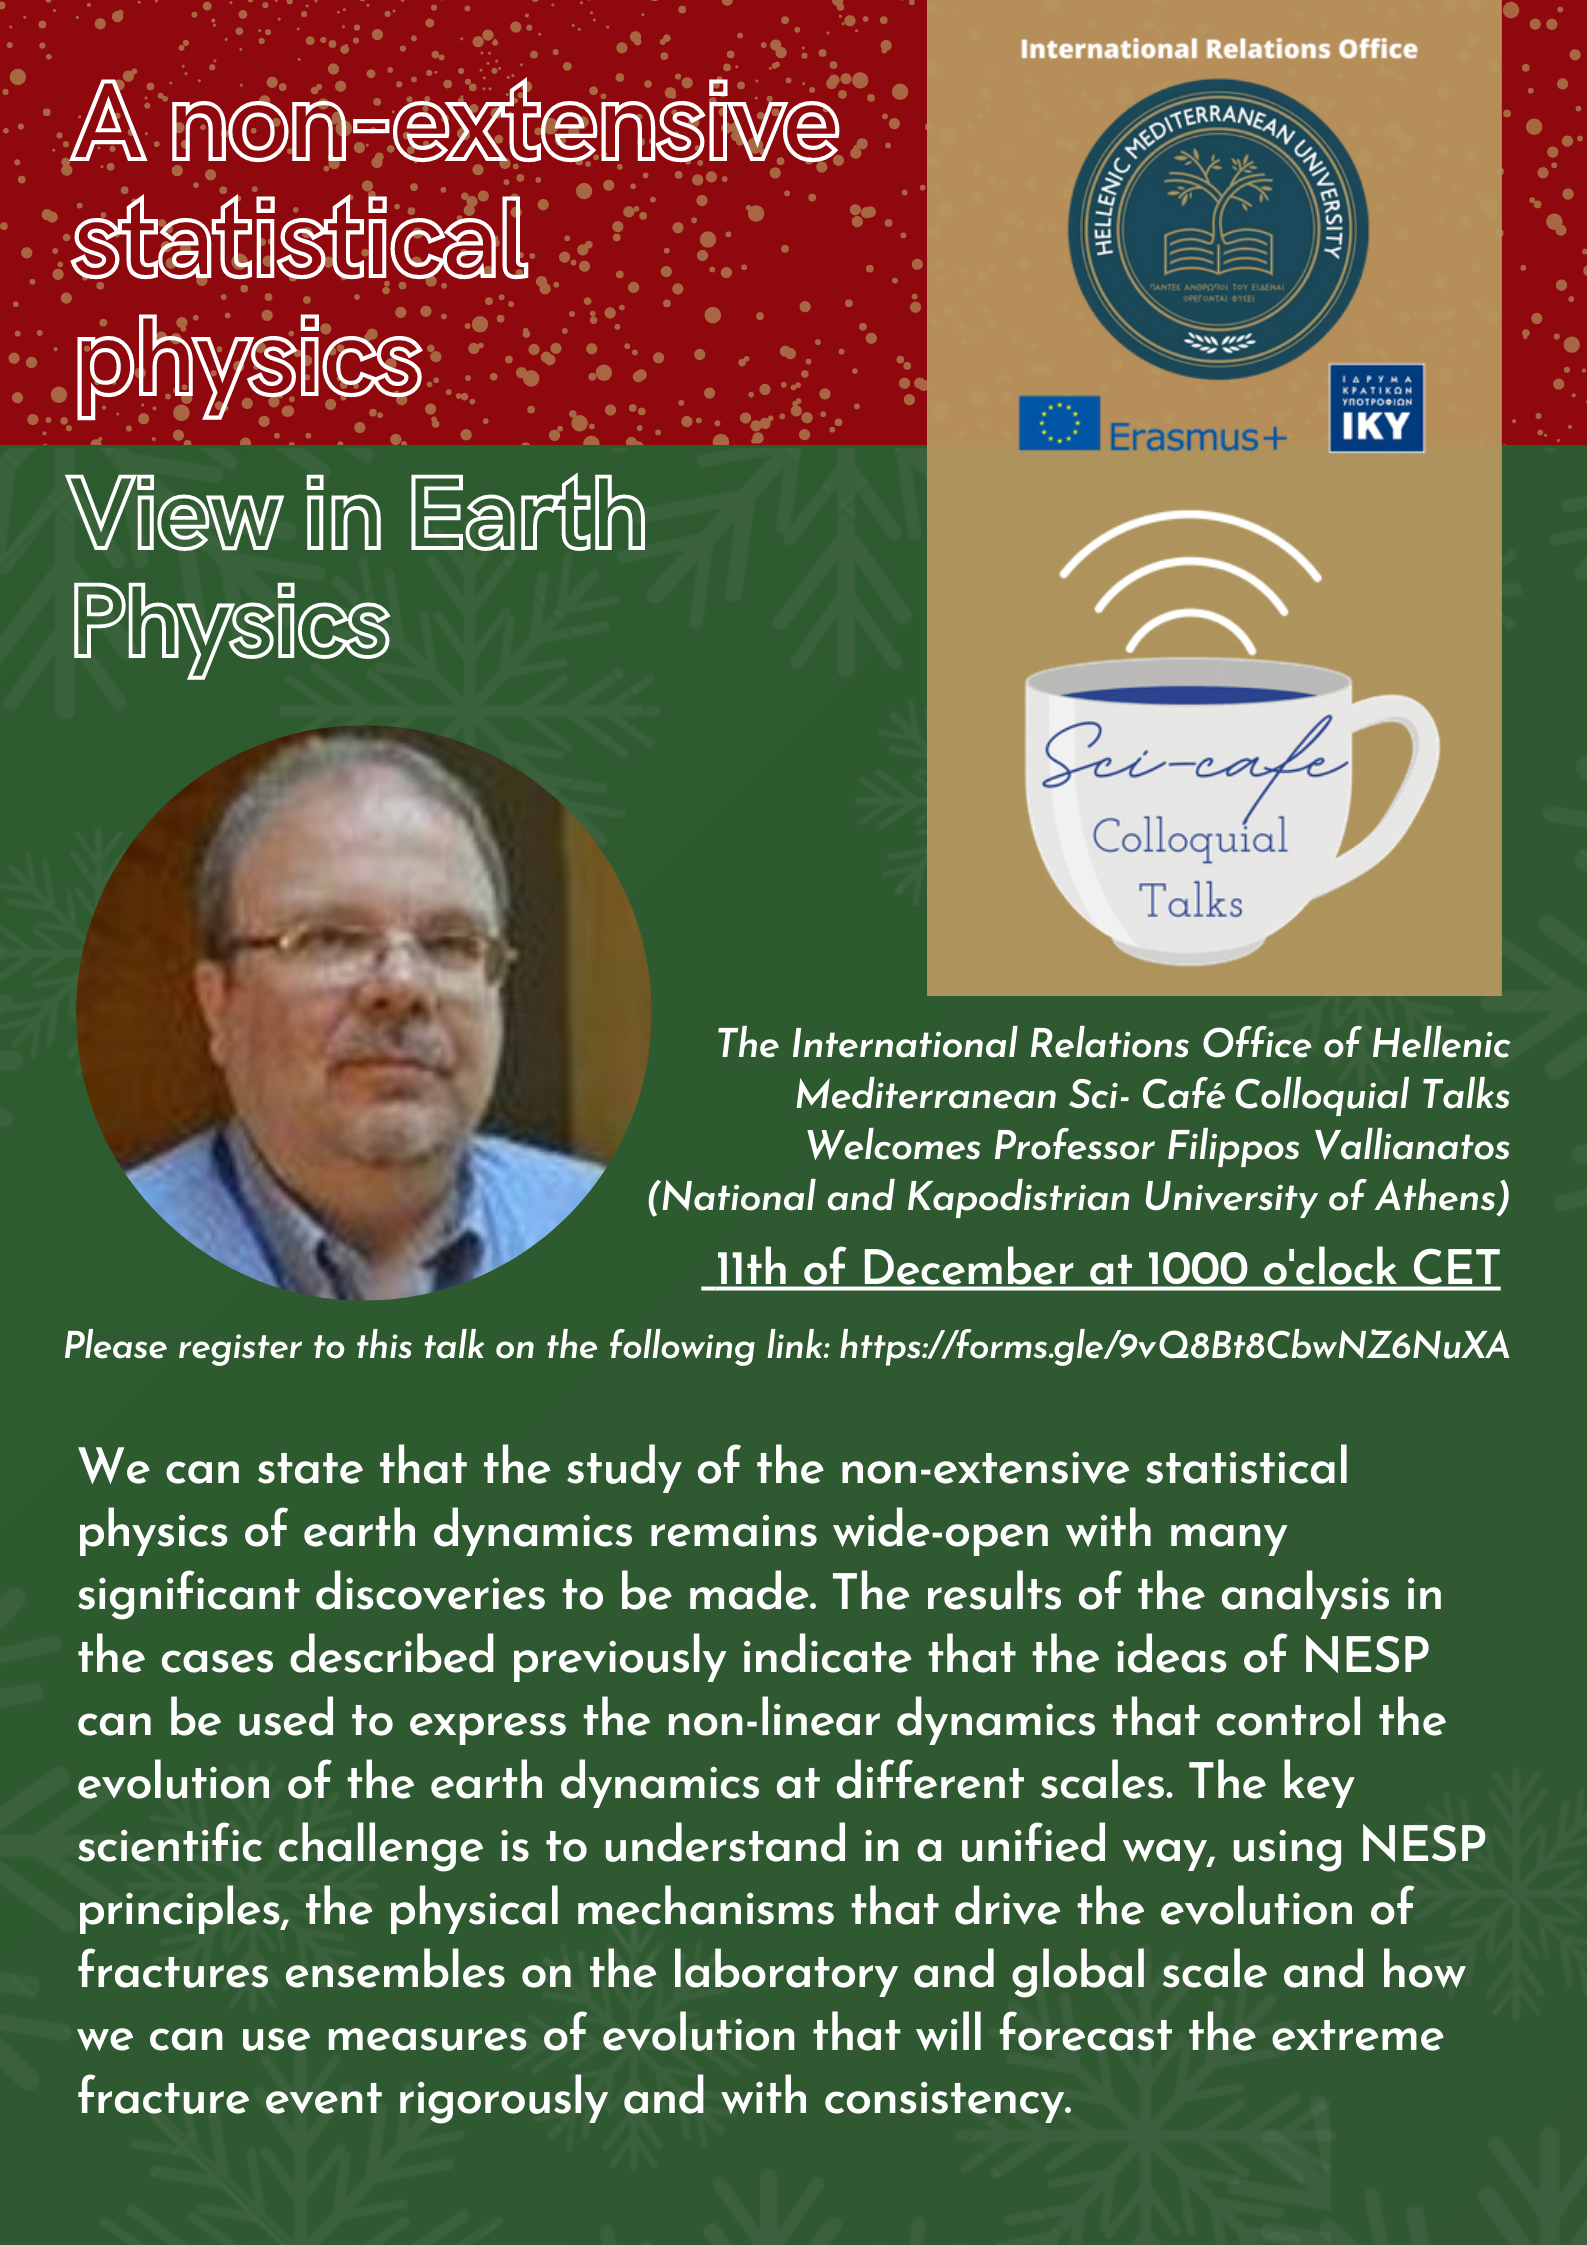 Webinar: A non –extensive statistical physics –View in Earth Physics